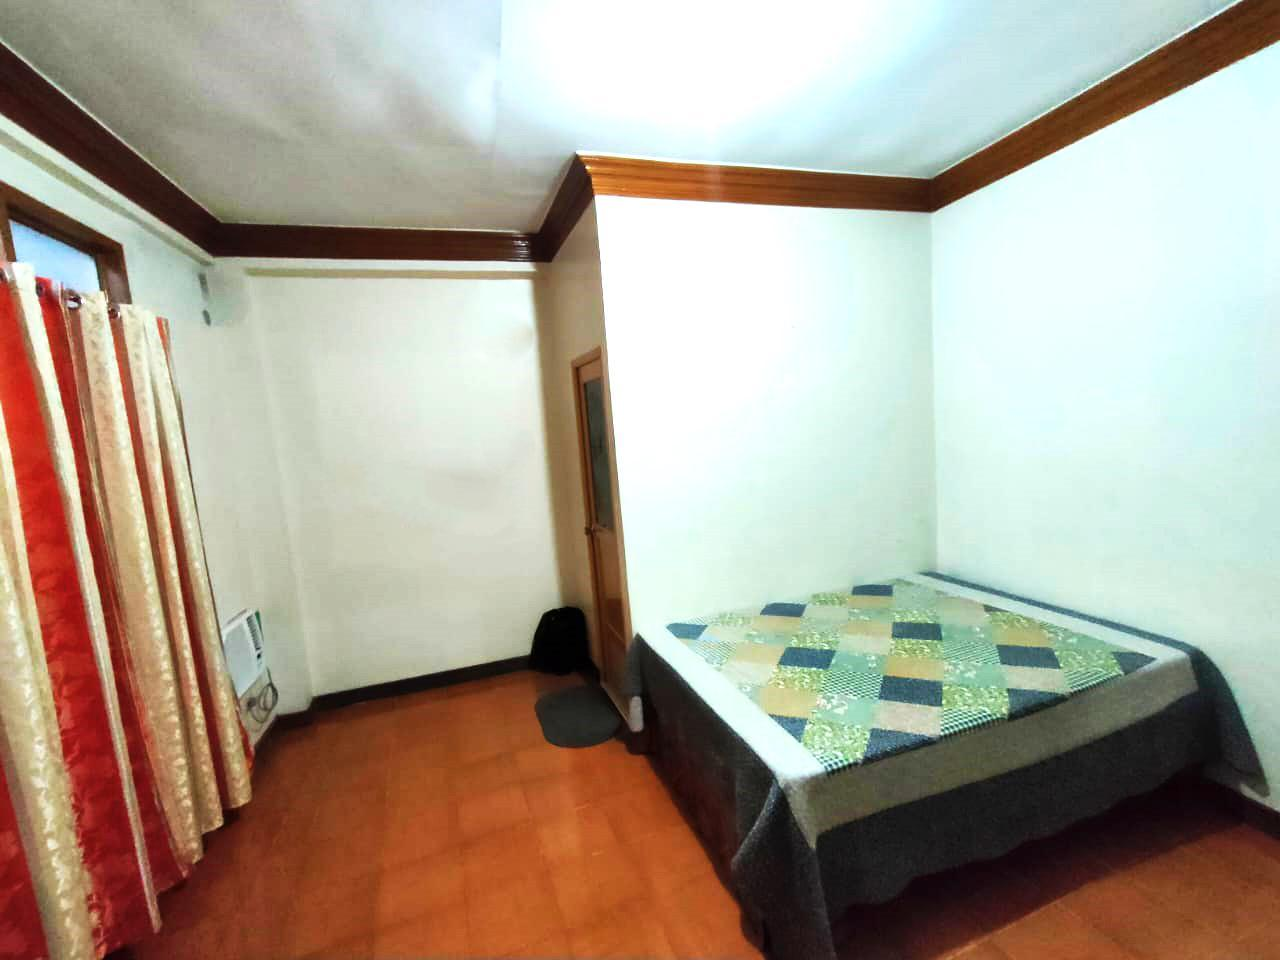 ROOM1 24 HOURS ROOM STAY IN KALIBO